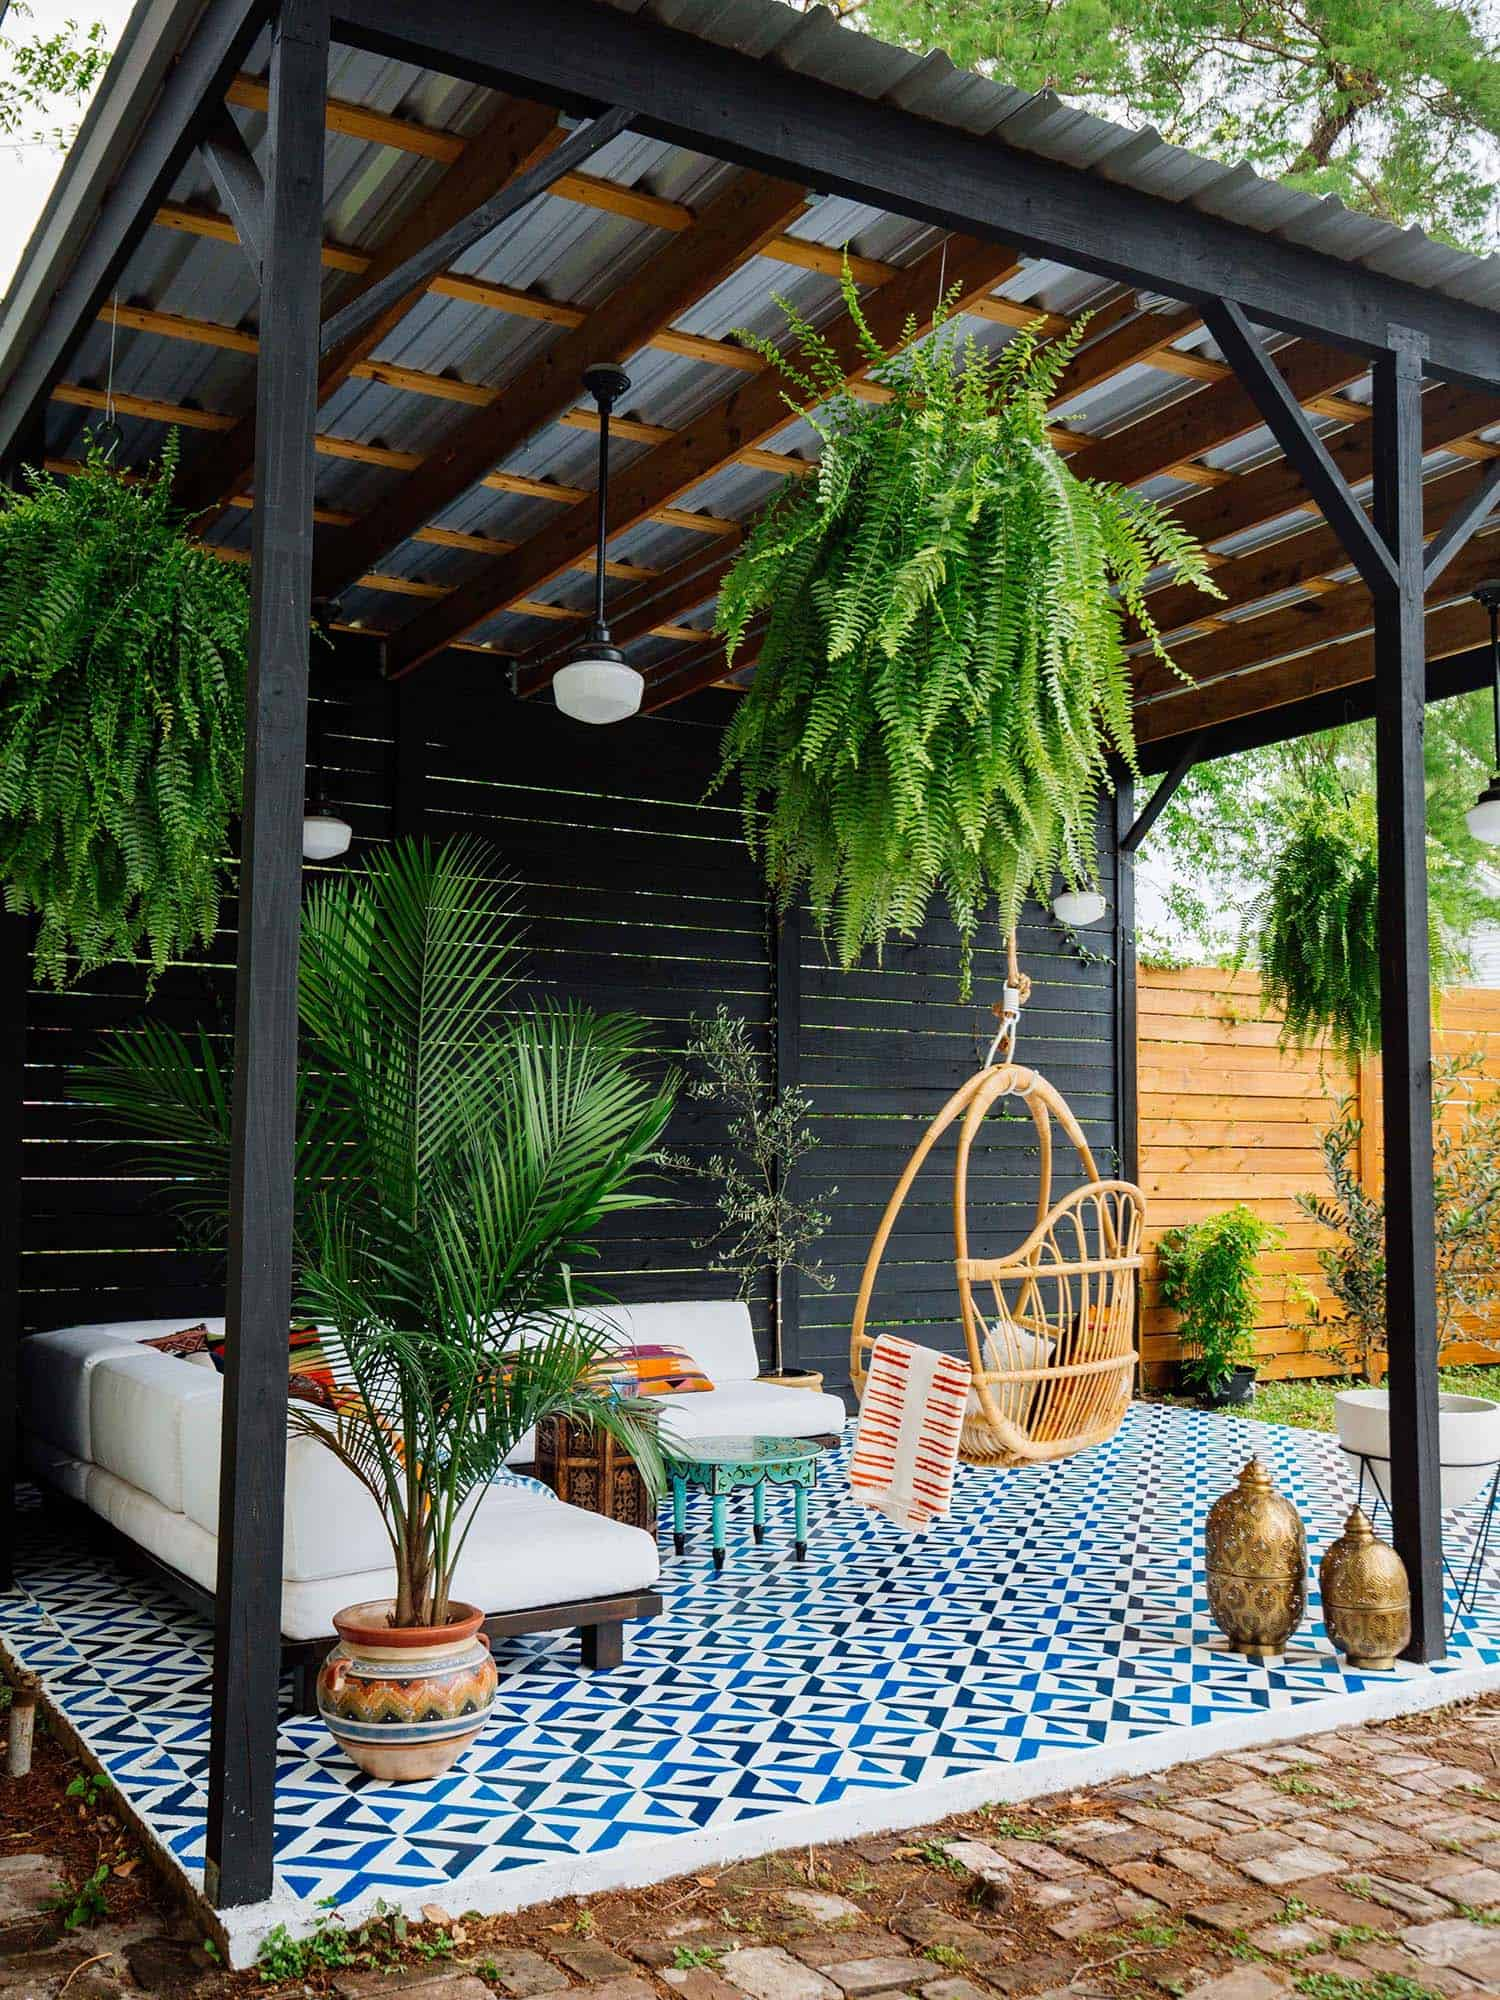 13 Brilliant and inspiring patio ideas for outdoor living and